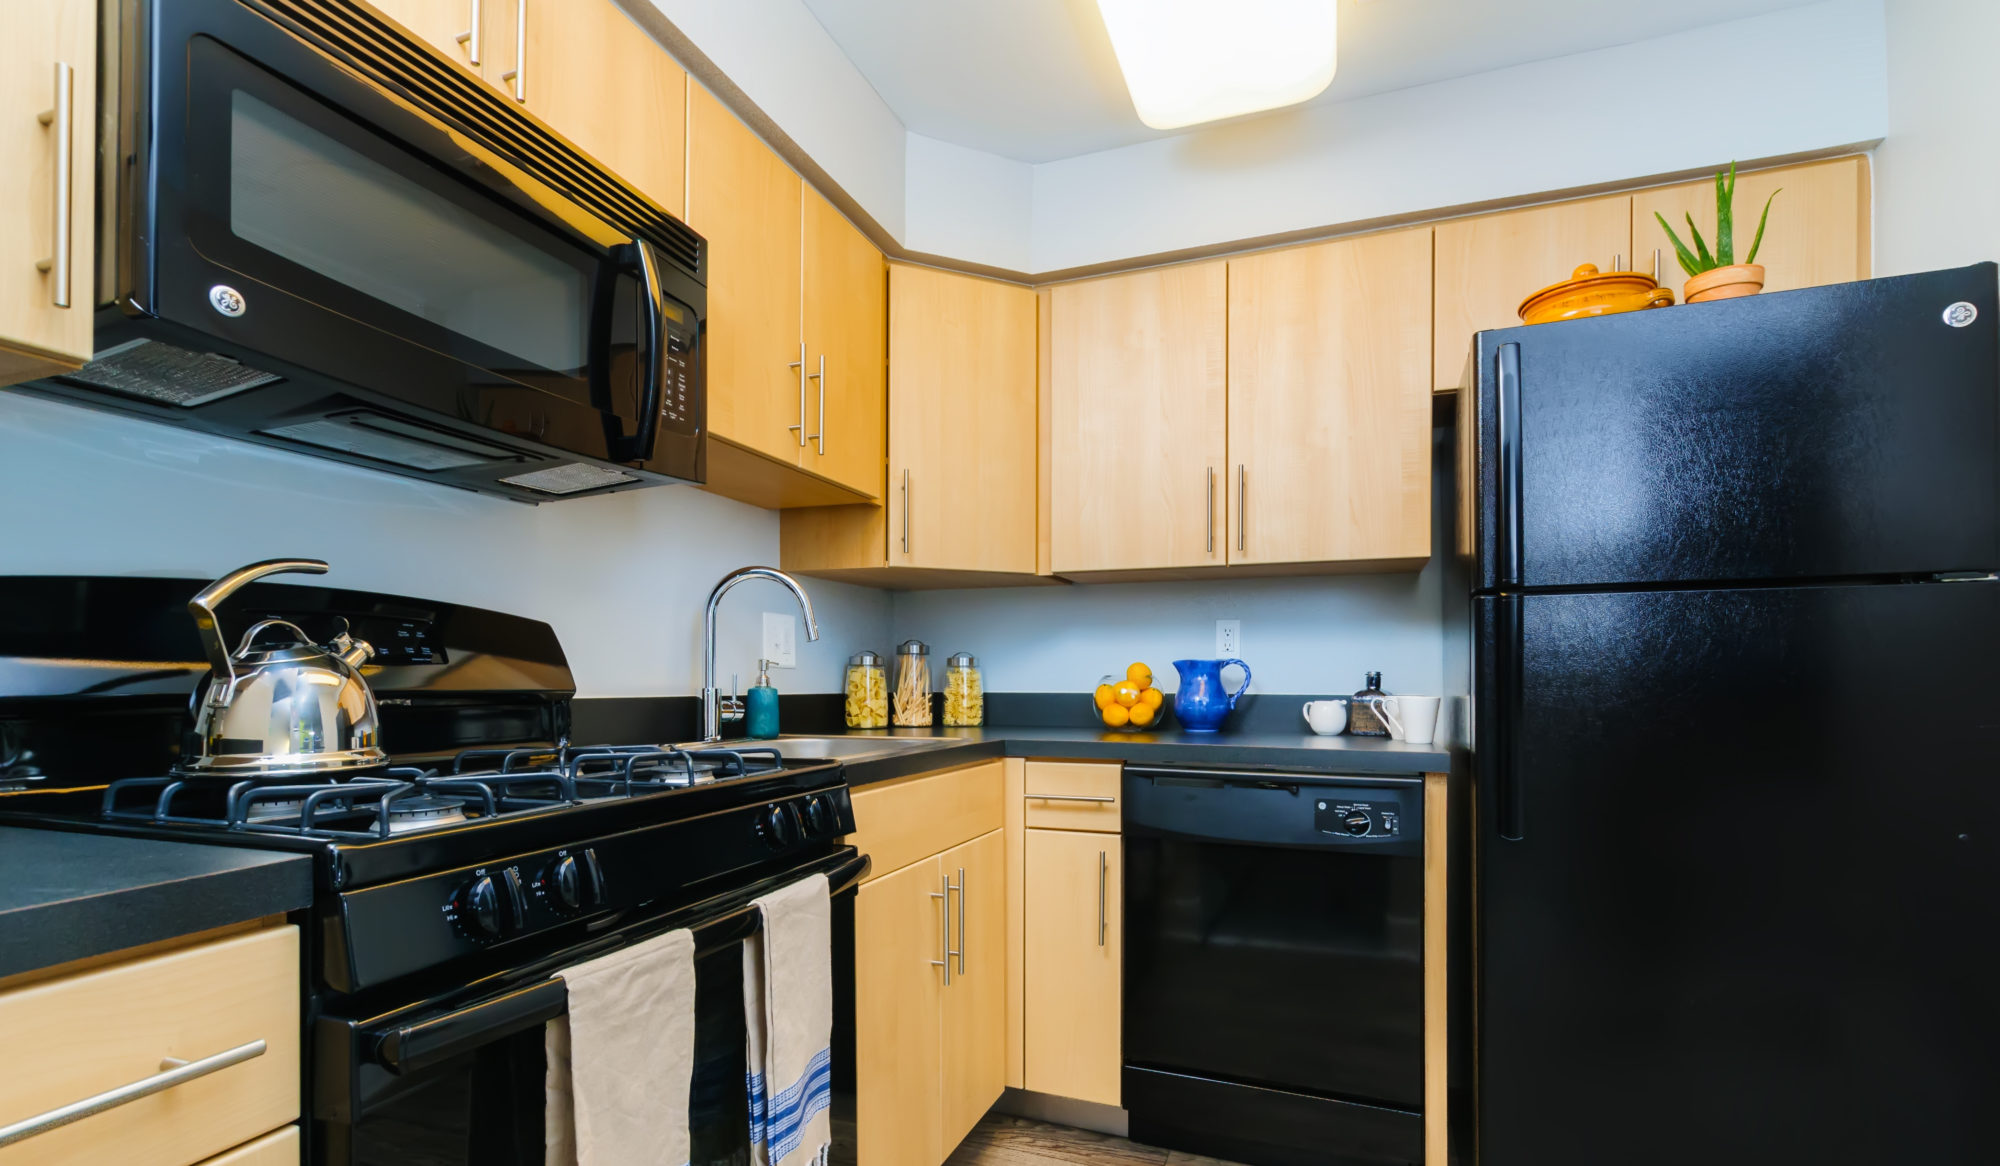 new kitchen in a Delaware apartment with wooden cabinets and black appliances